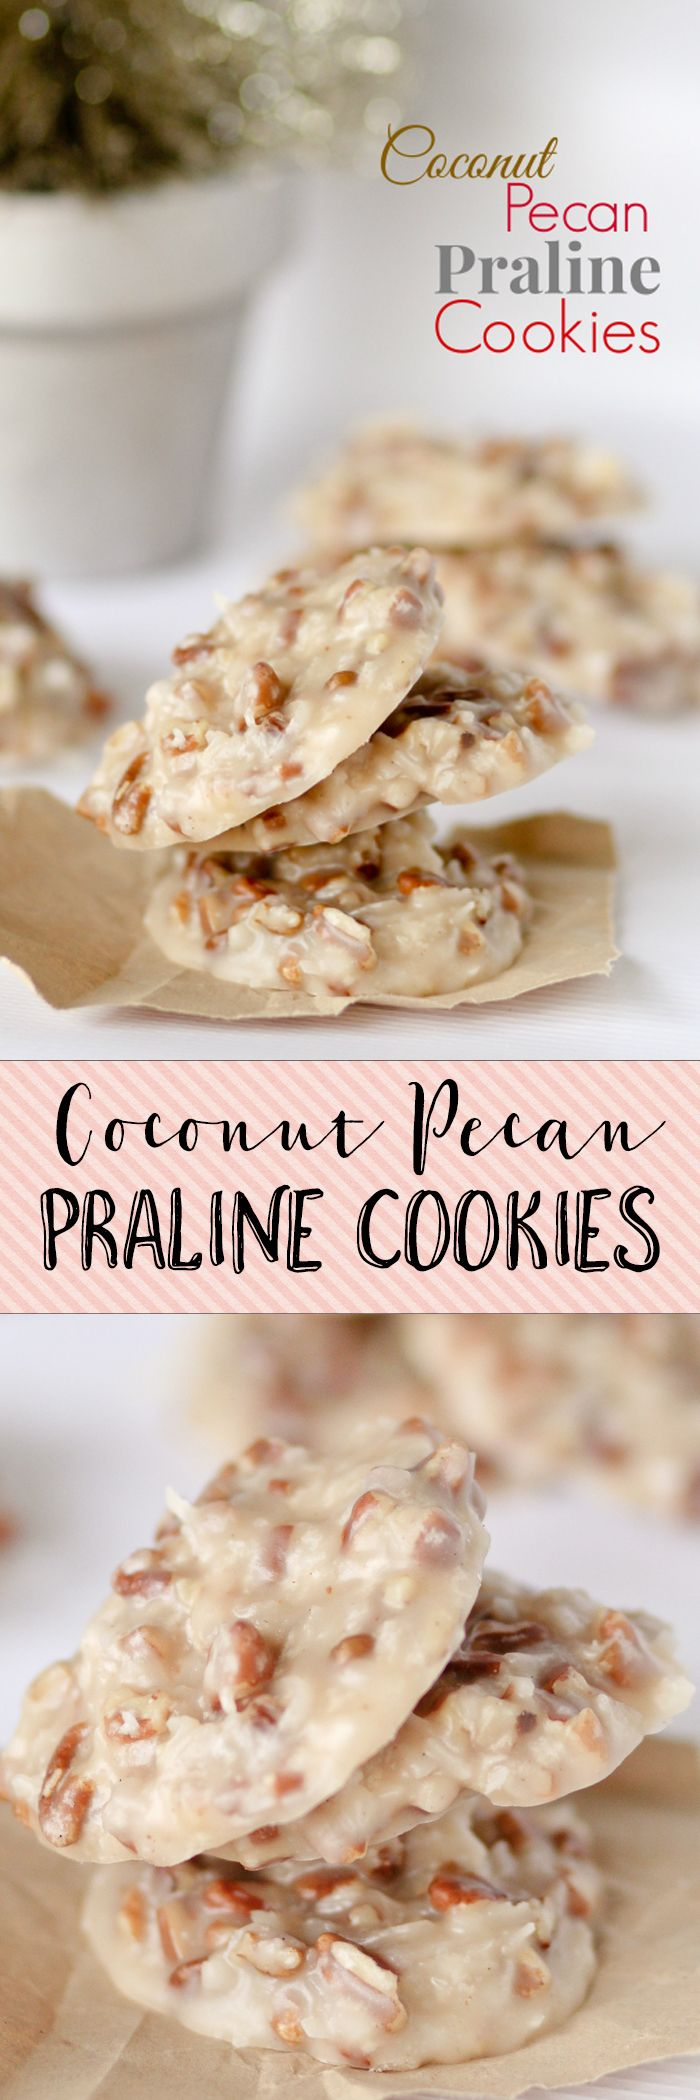 No Bake Coconut Pecan Praline Cookies. I GET SO MANY REQUESTS FOR THESE!! Love love them. Dip the bottoms in chocolate to make them even more decadent!!